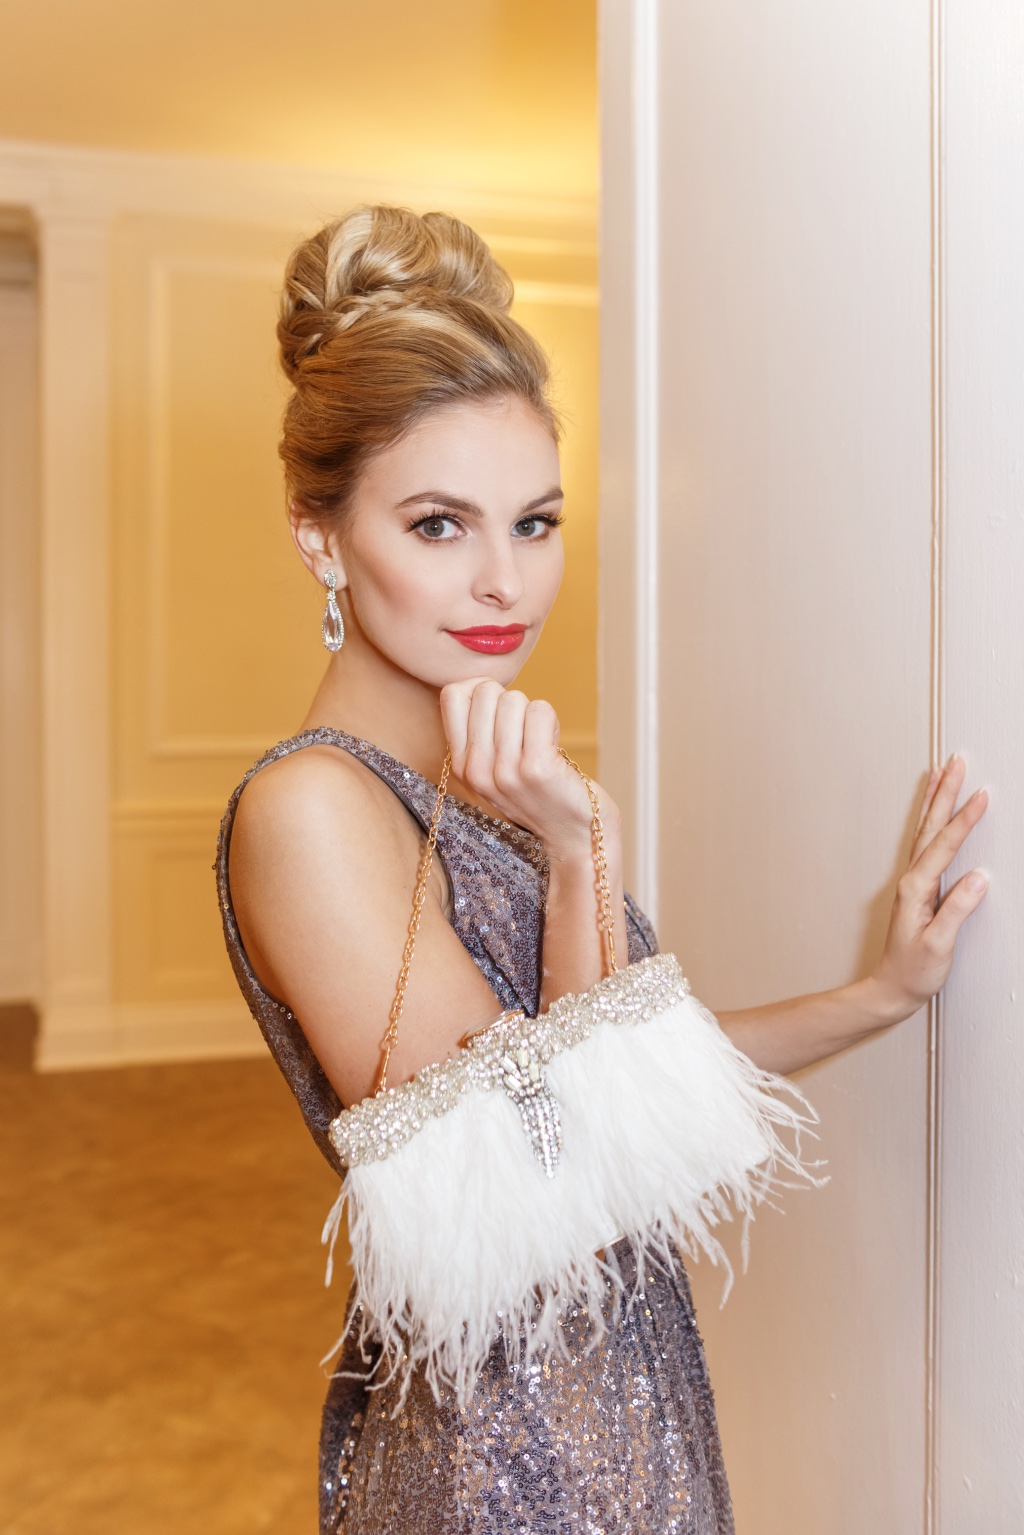 Make a statement on your wedding day with a gorgeous one of a kind bridal clutch